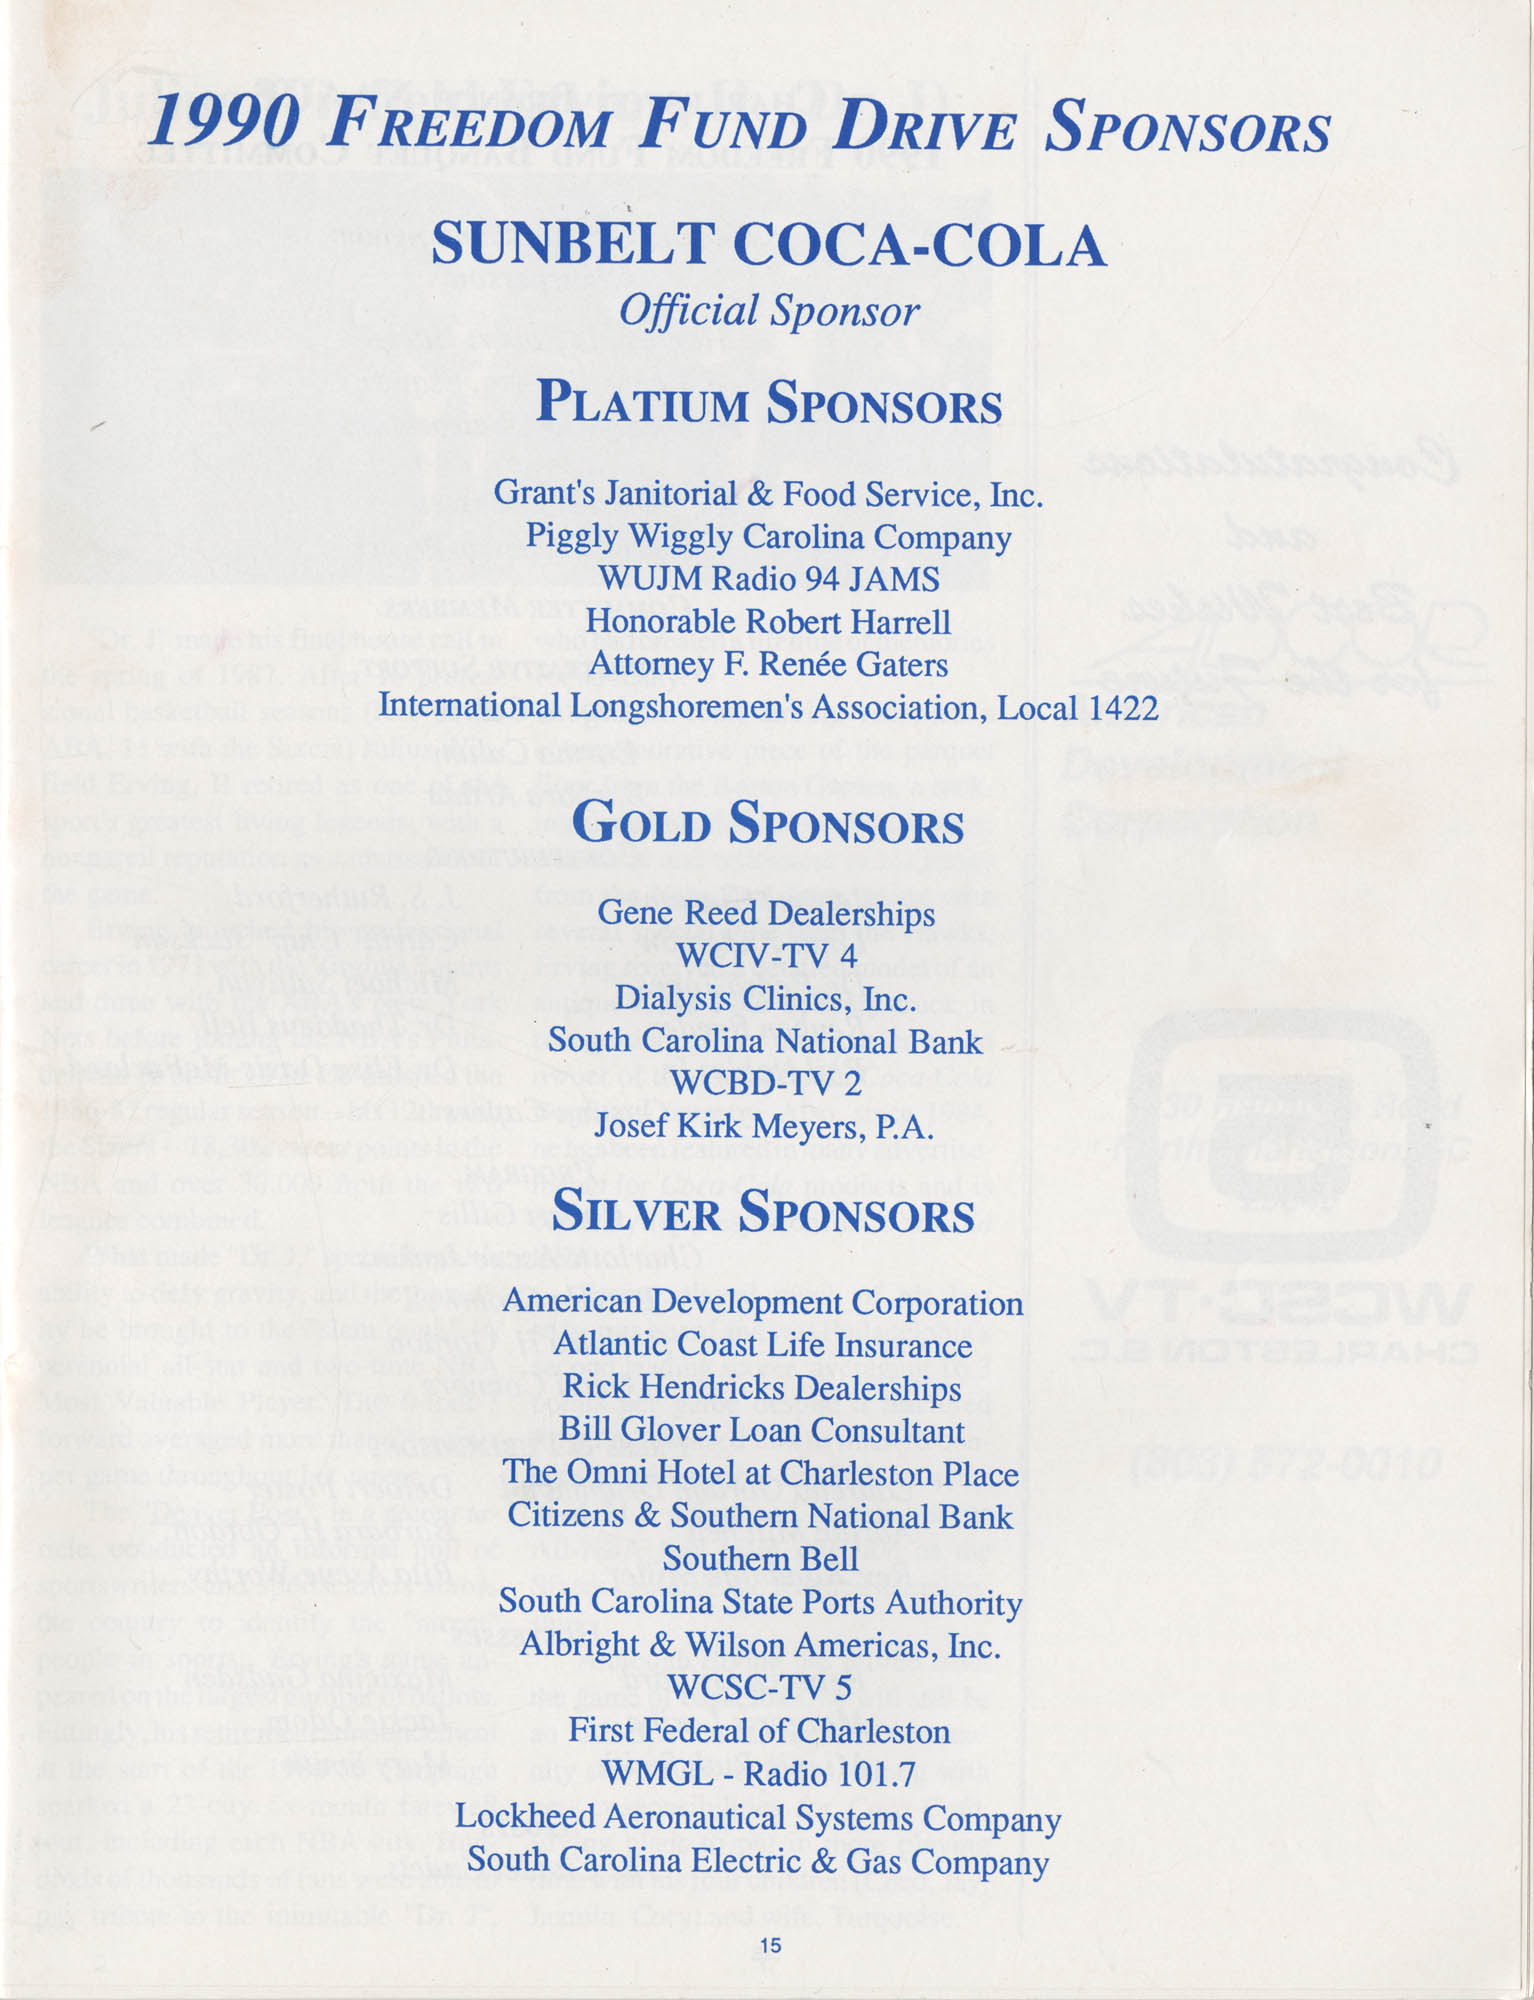 1990 NAACP Freedom Fund Magazine, Charleston Branch of the NAACP, 74th Anniversary, Page 15